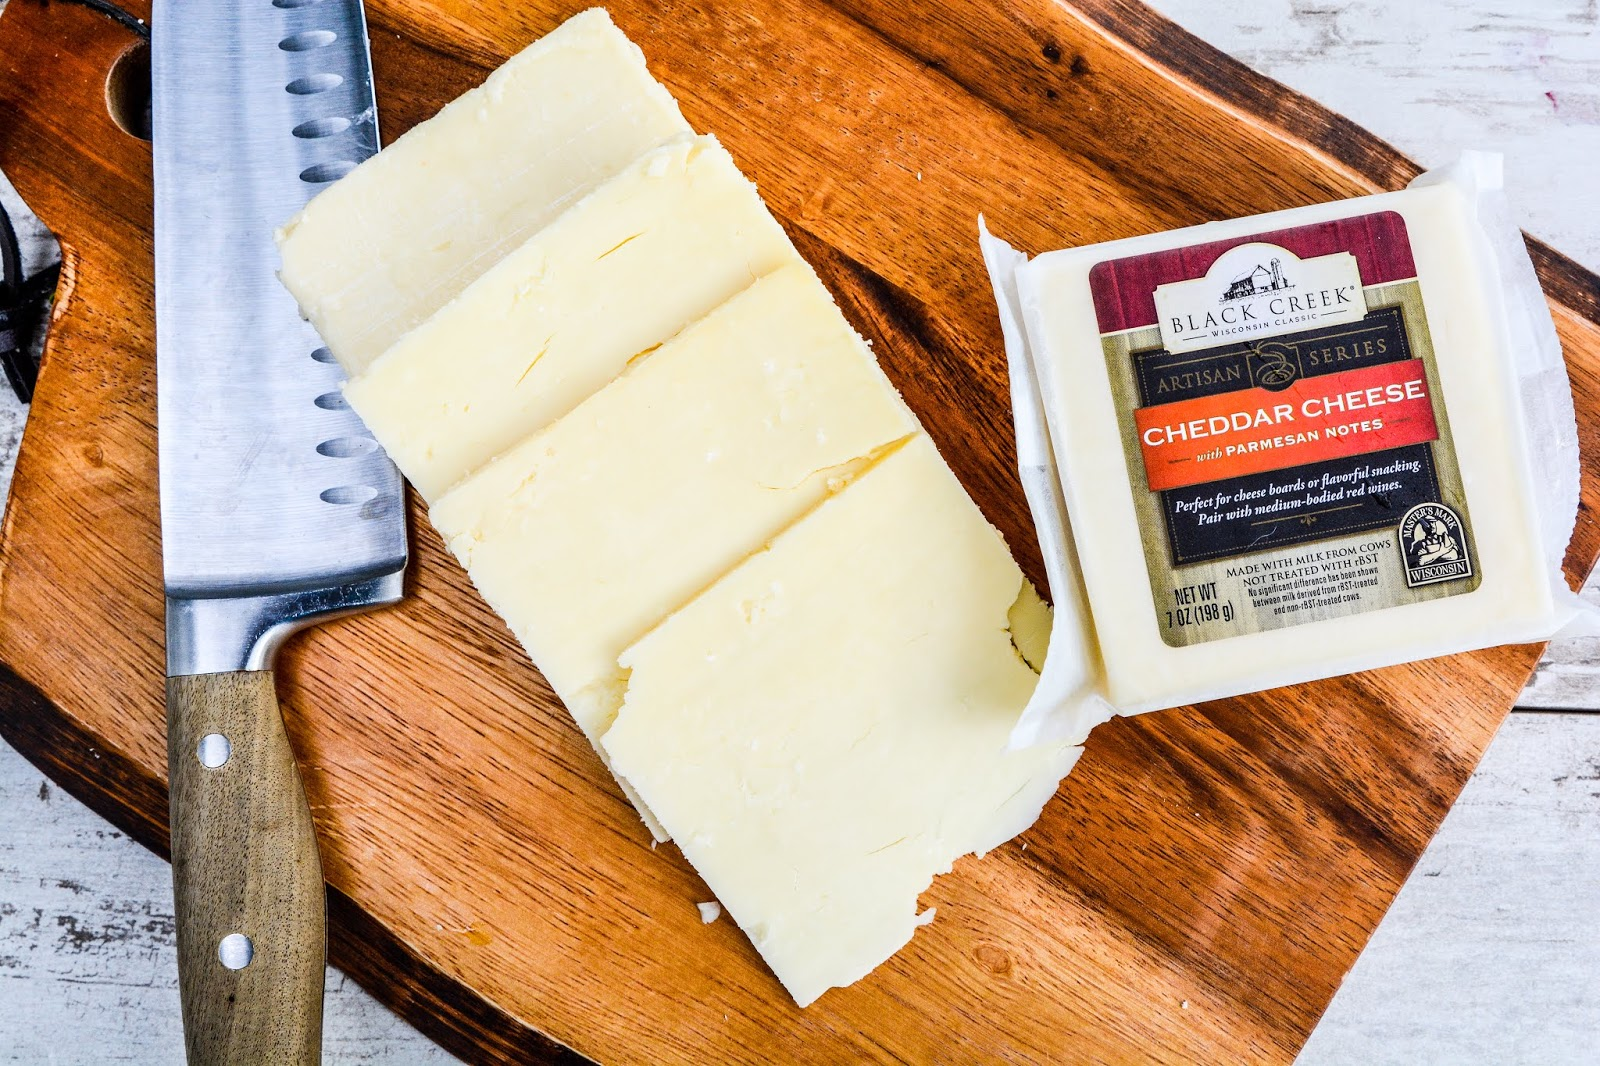 Black Creek Cheddar Cheese